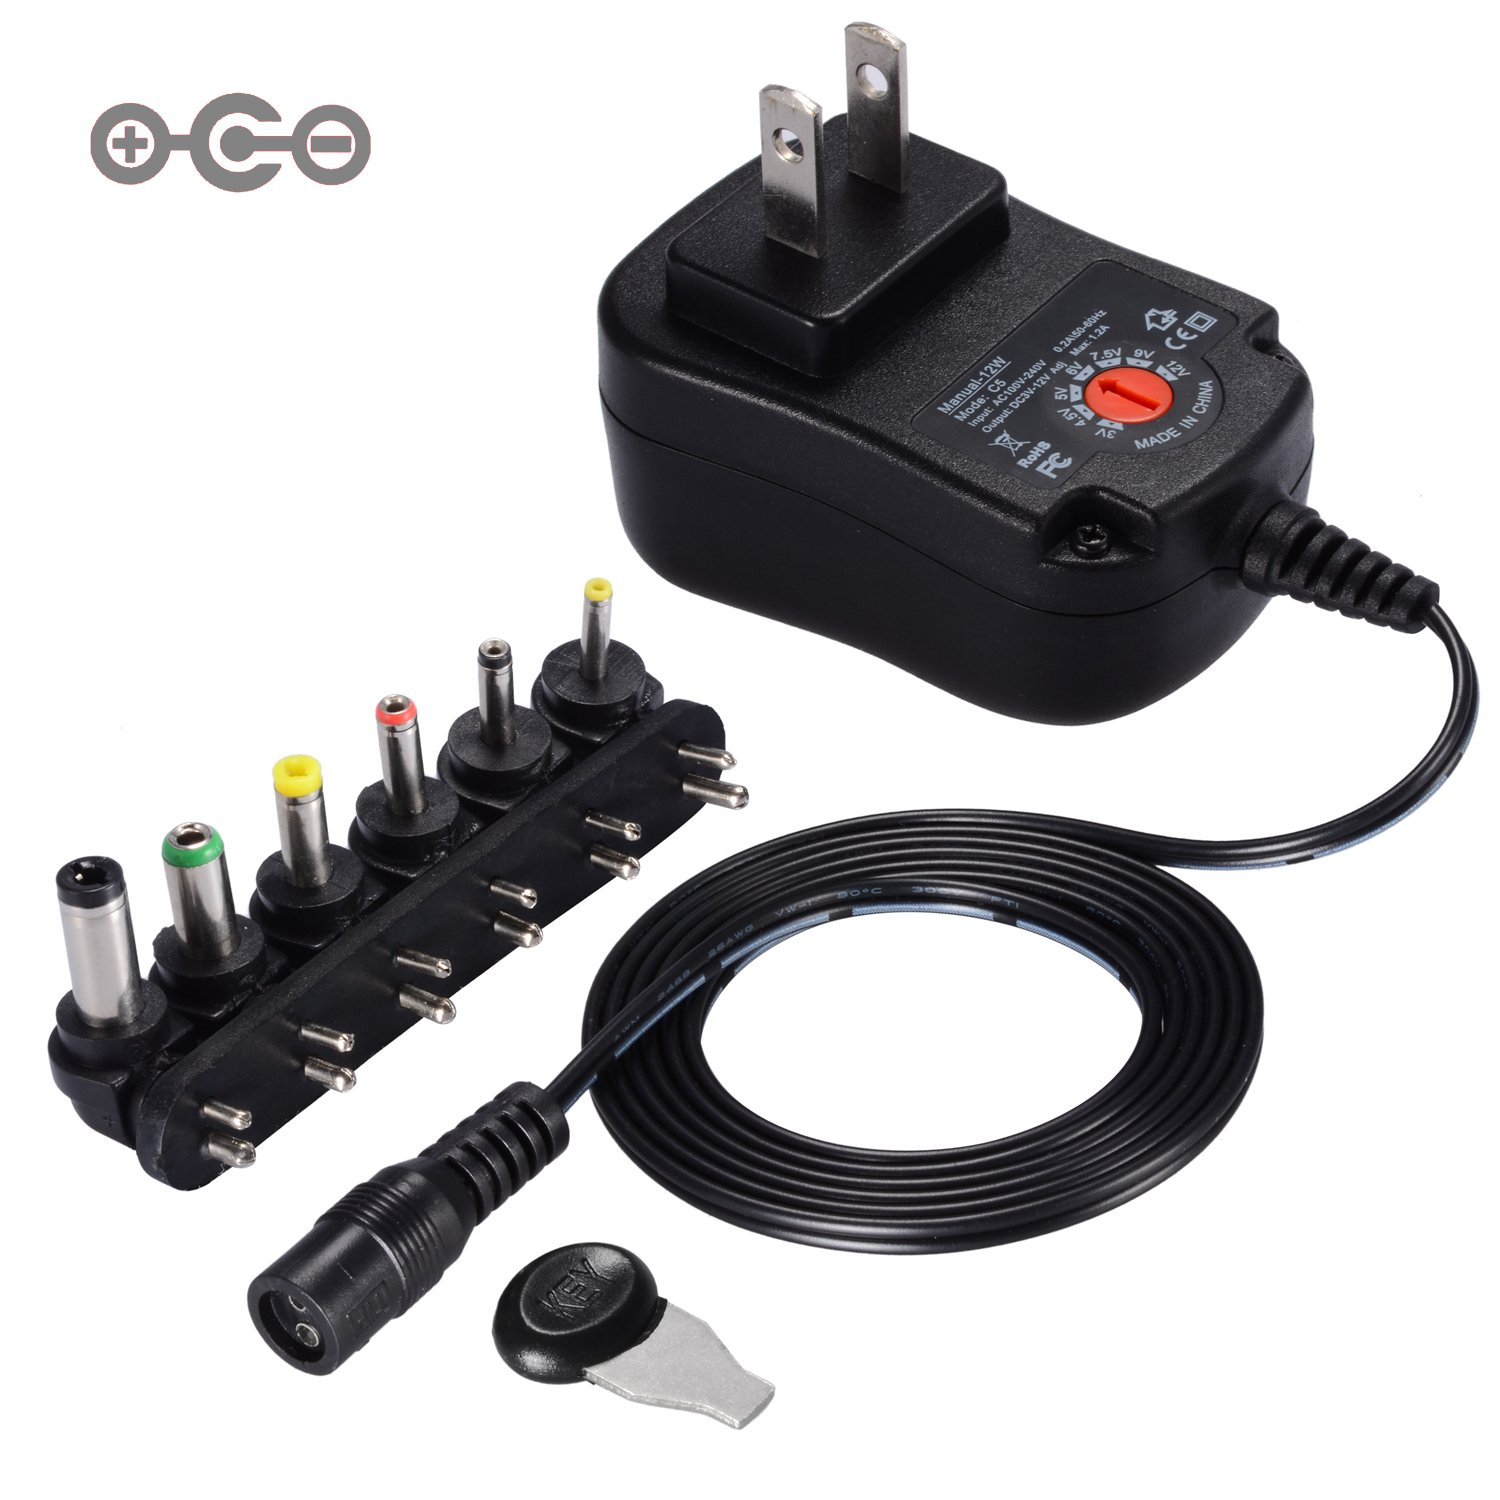 Cheap 6v Dc 350ma Ac Adapter Find Deals On Low Power Negative Car Supply Get Quotations Version Soulbay 12w Universal Charger Switching With